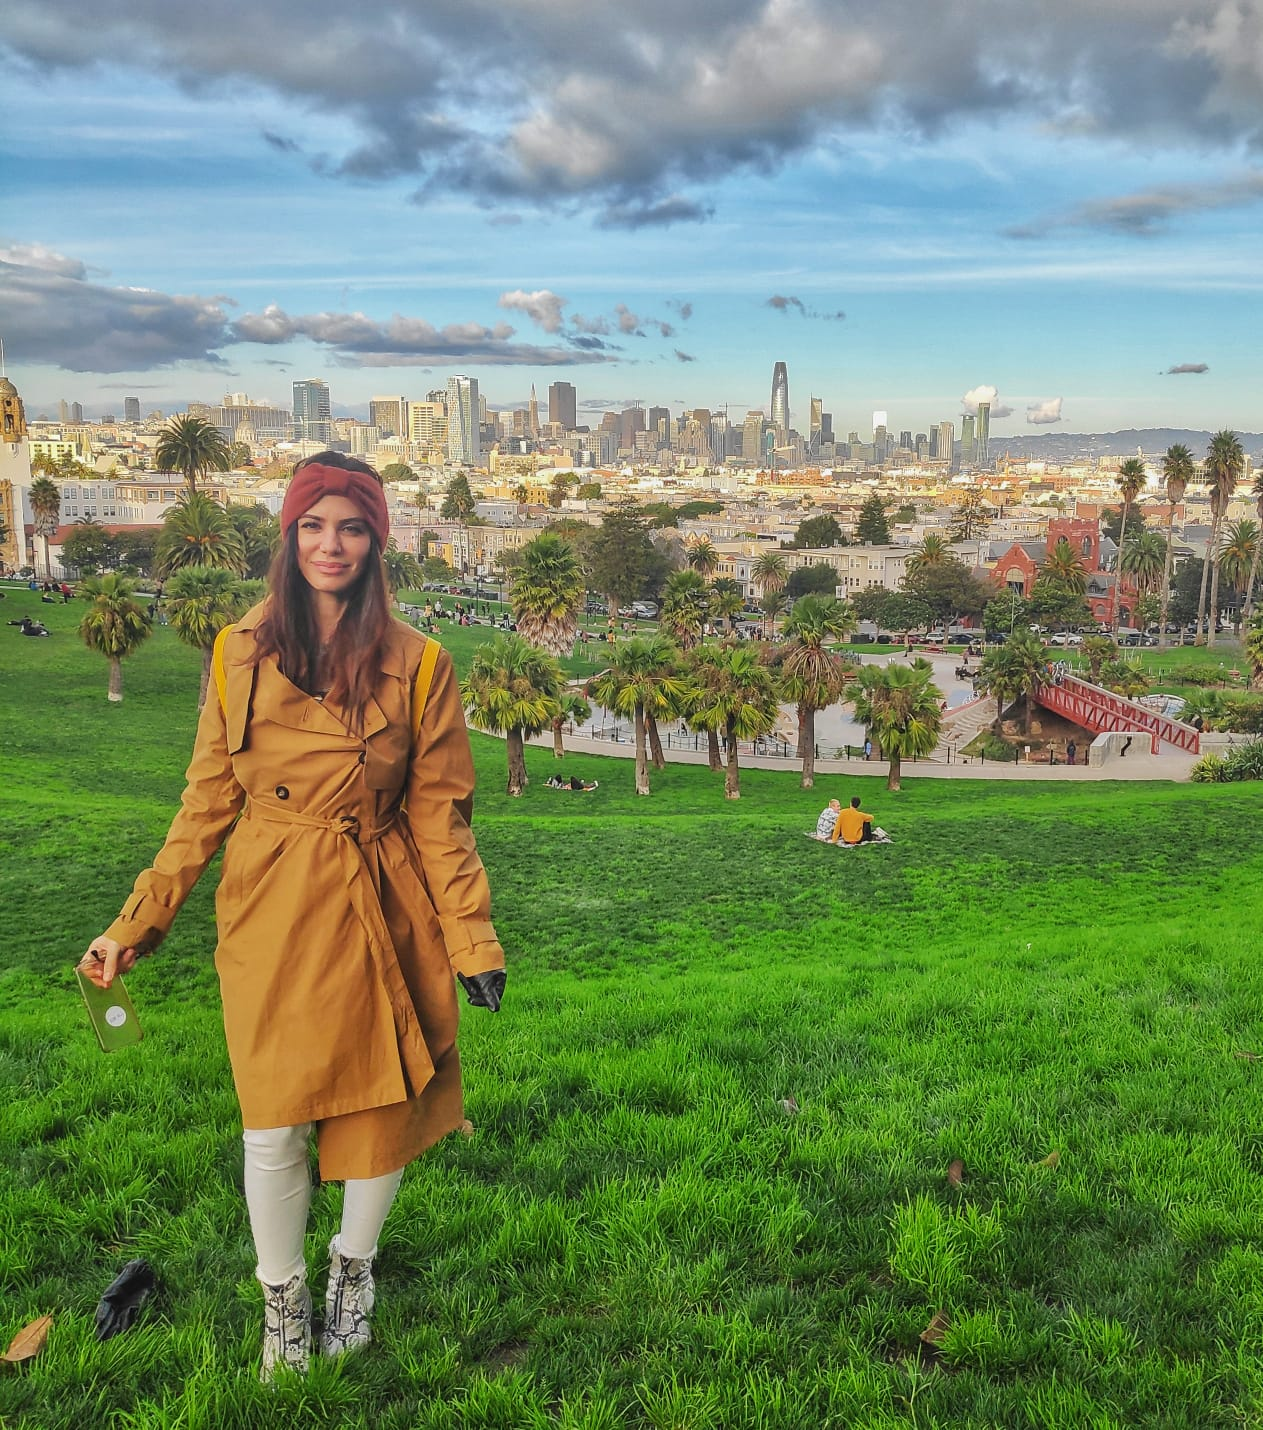 A photo of the author standing on a hill in front of the San Francisco skyline